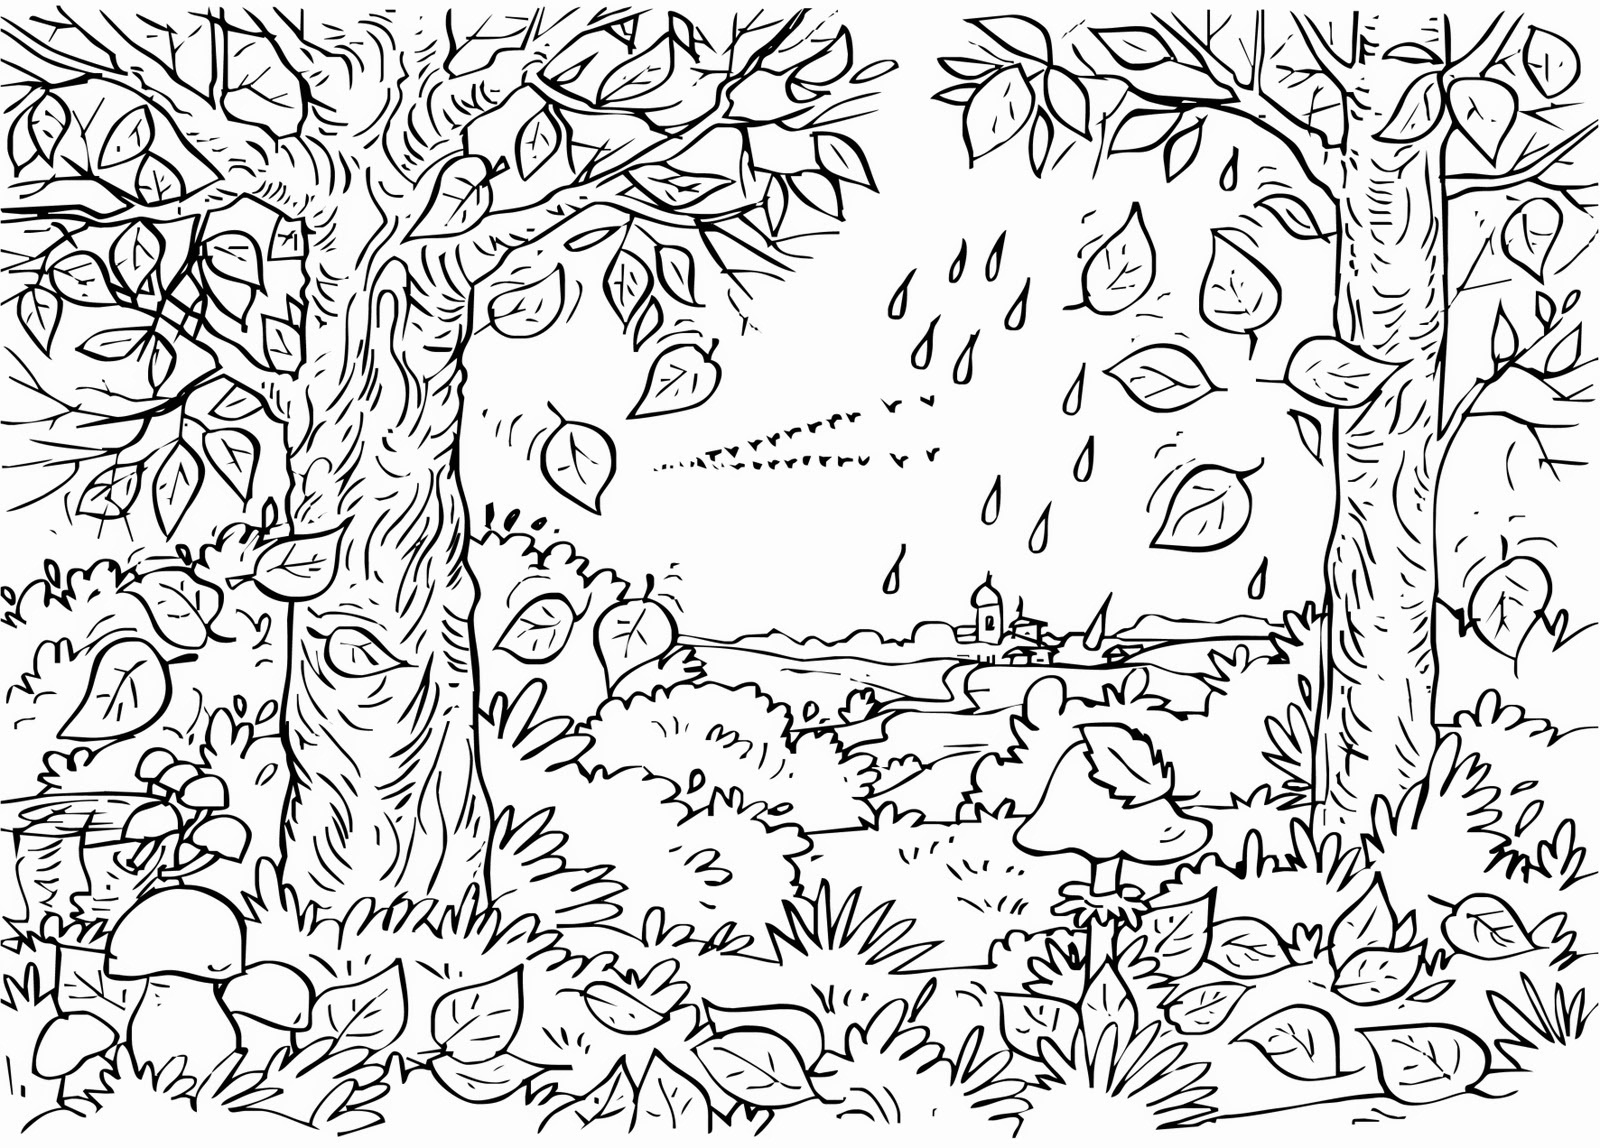 Fall Coloring Pages For Adults - Best Coloring Pages For Kids - Free Printable Fall Coloring Pages For Adults